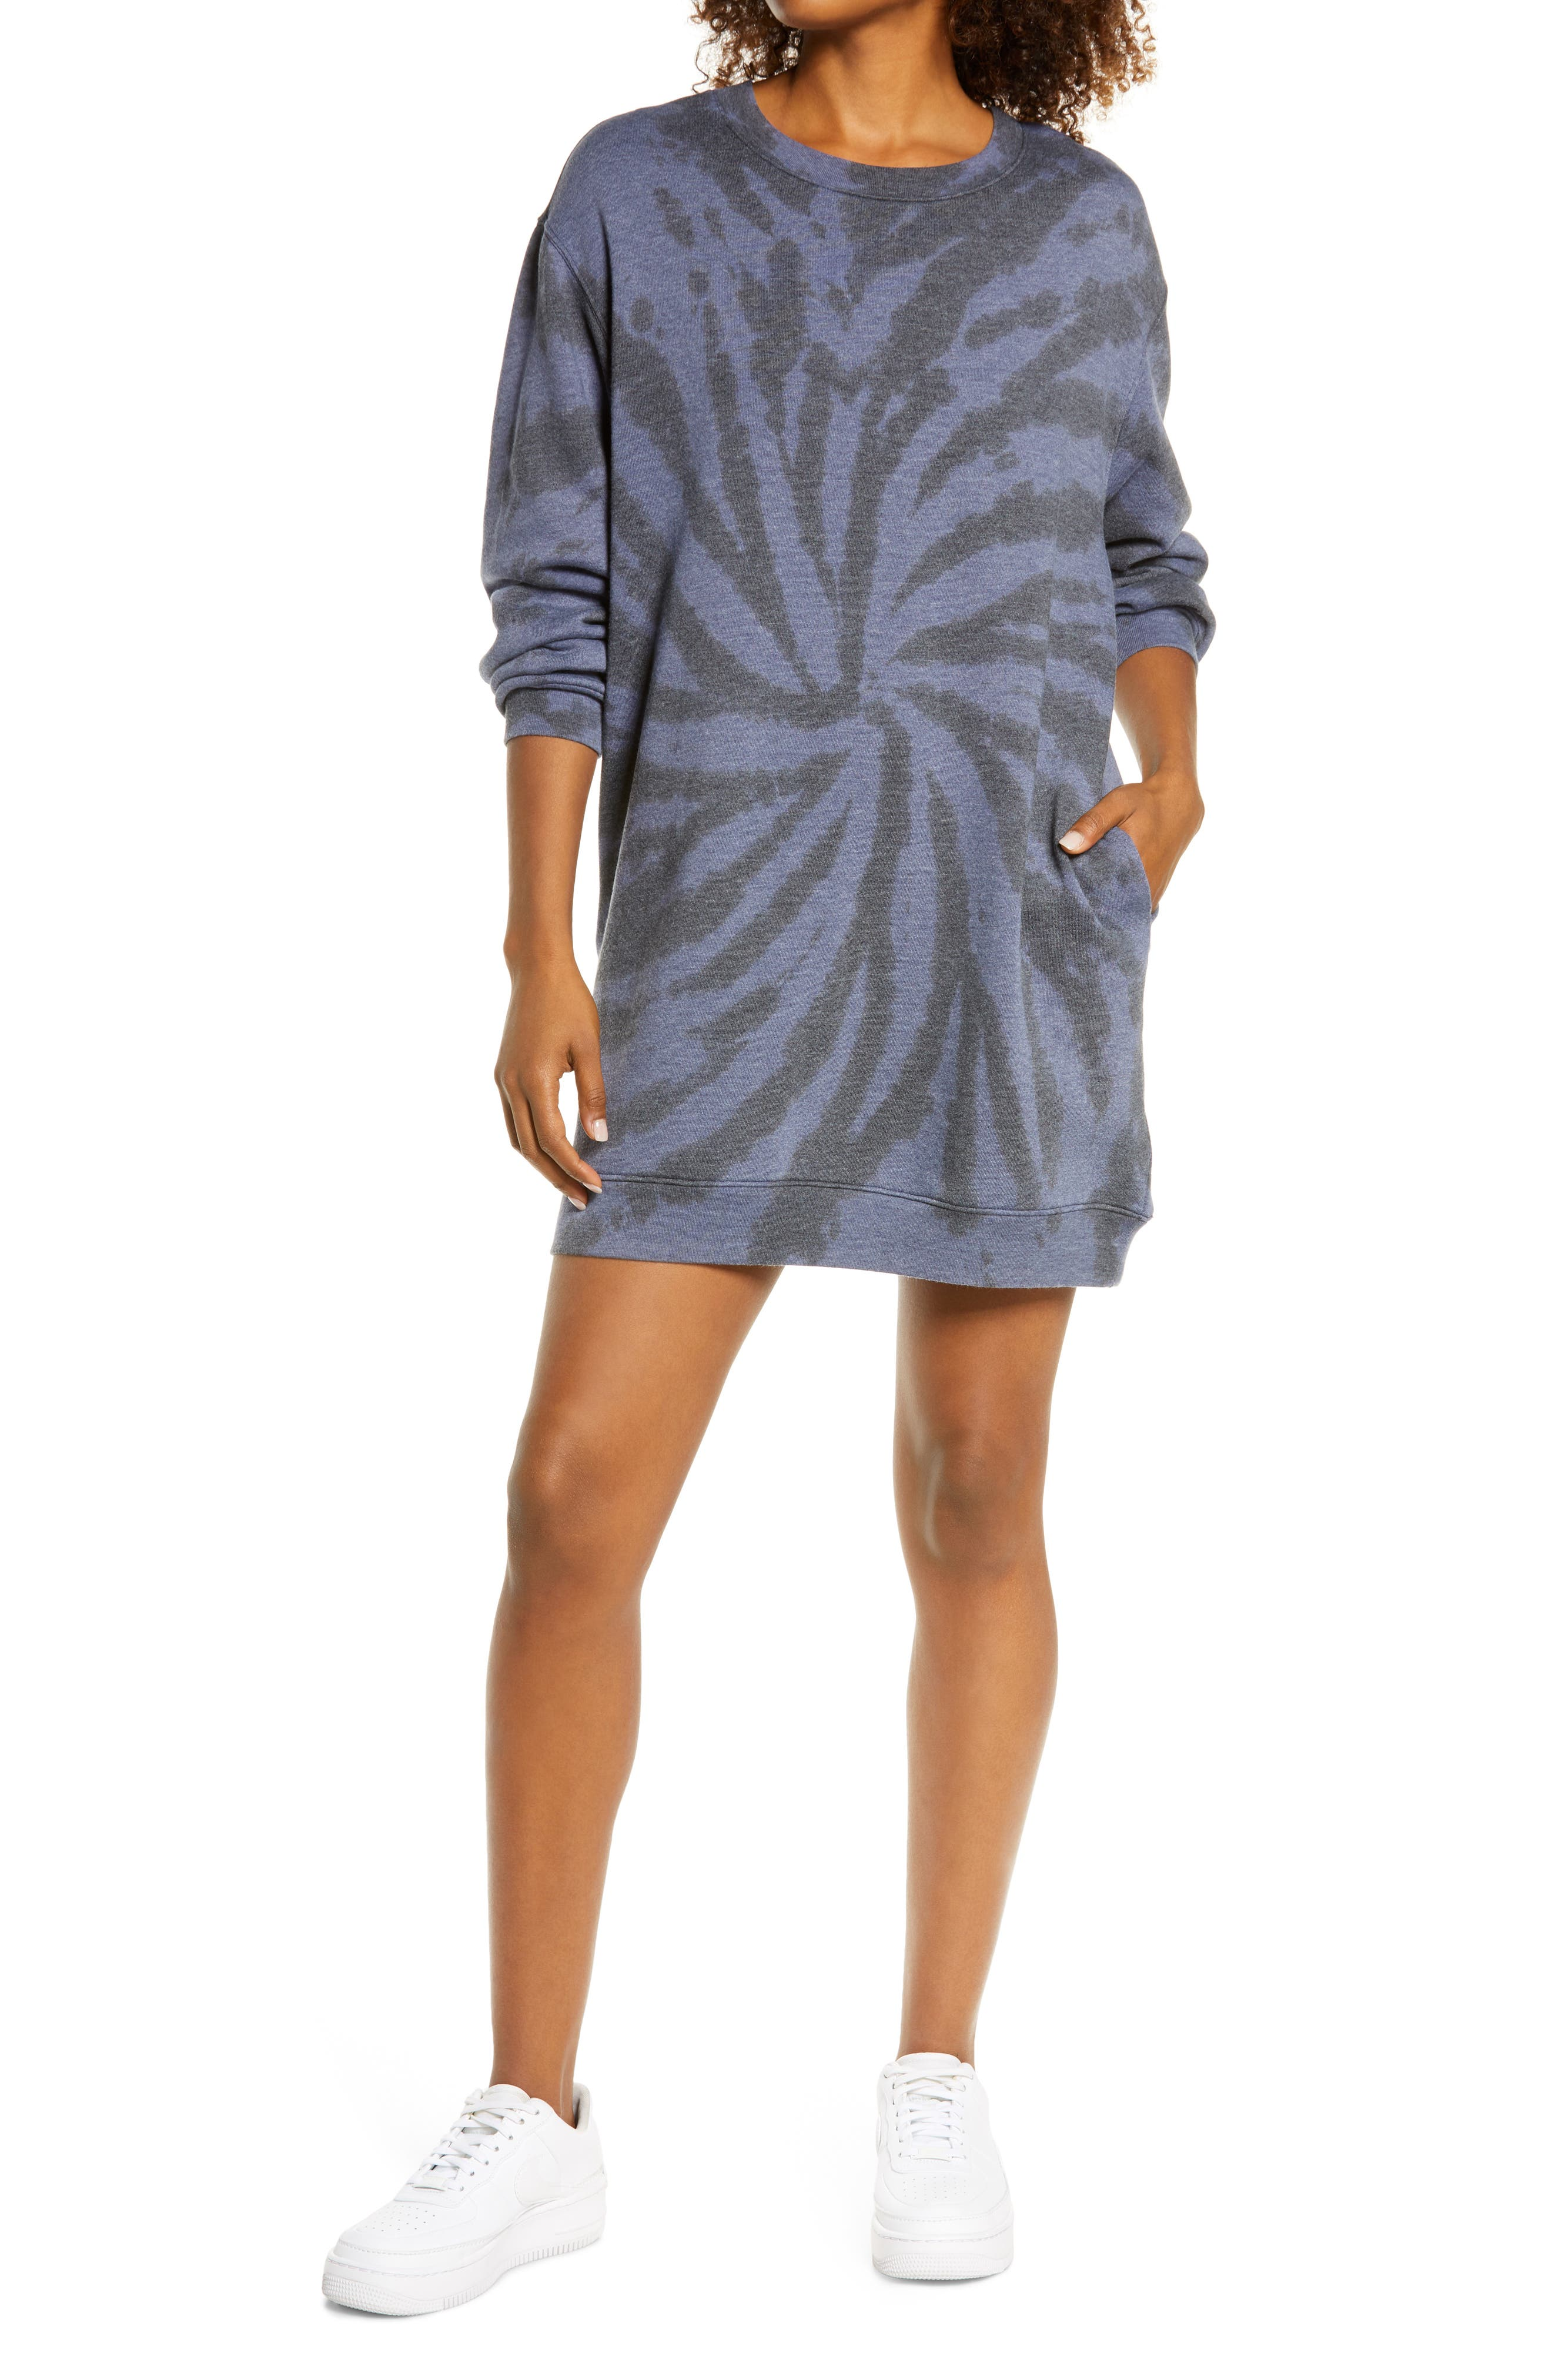 You\\\'ll be ready to run errands or hit the couch for a movie marathon in this cozy cotton-blend sweatshirt-dress that achieves the ultimate in casual comfort. Style Name: Zella Cali Tie Dye Cotton Blend Sweatshirt Dress. Style Number: 6084423. Available in stores.